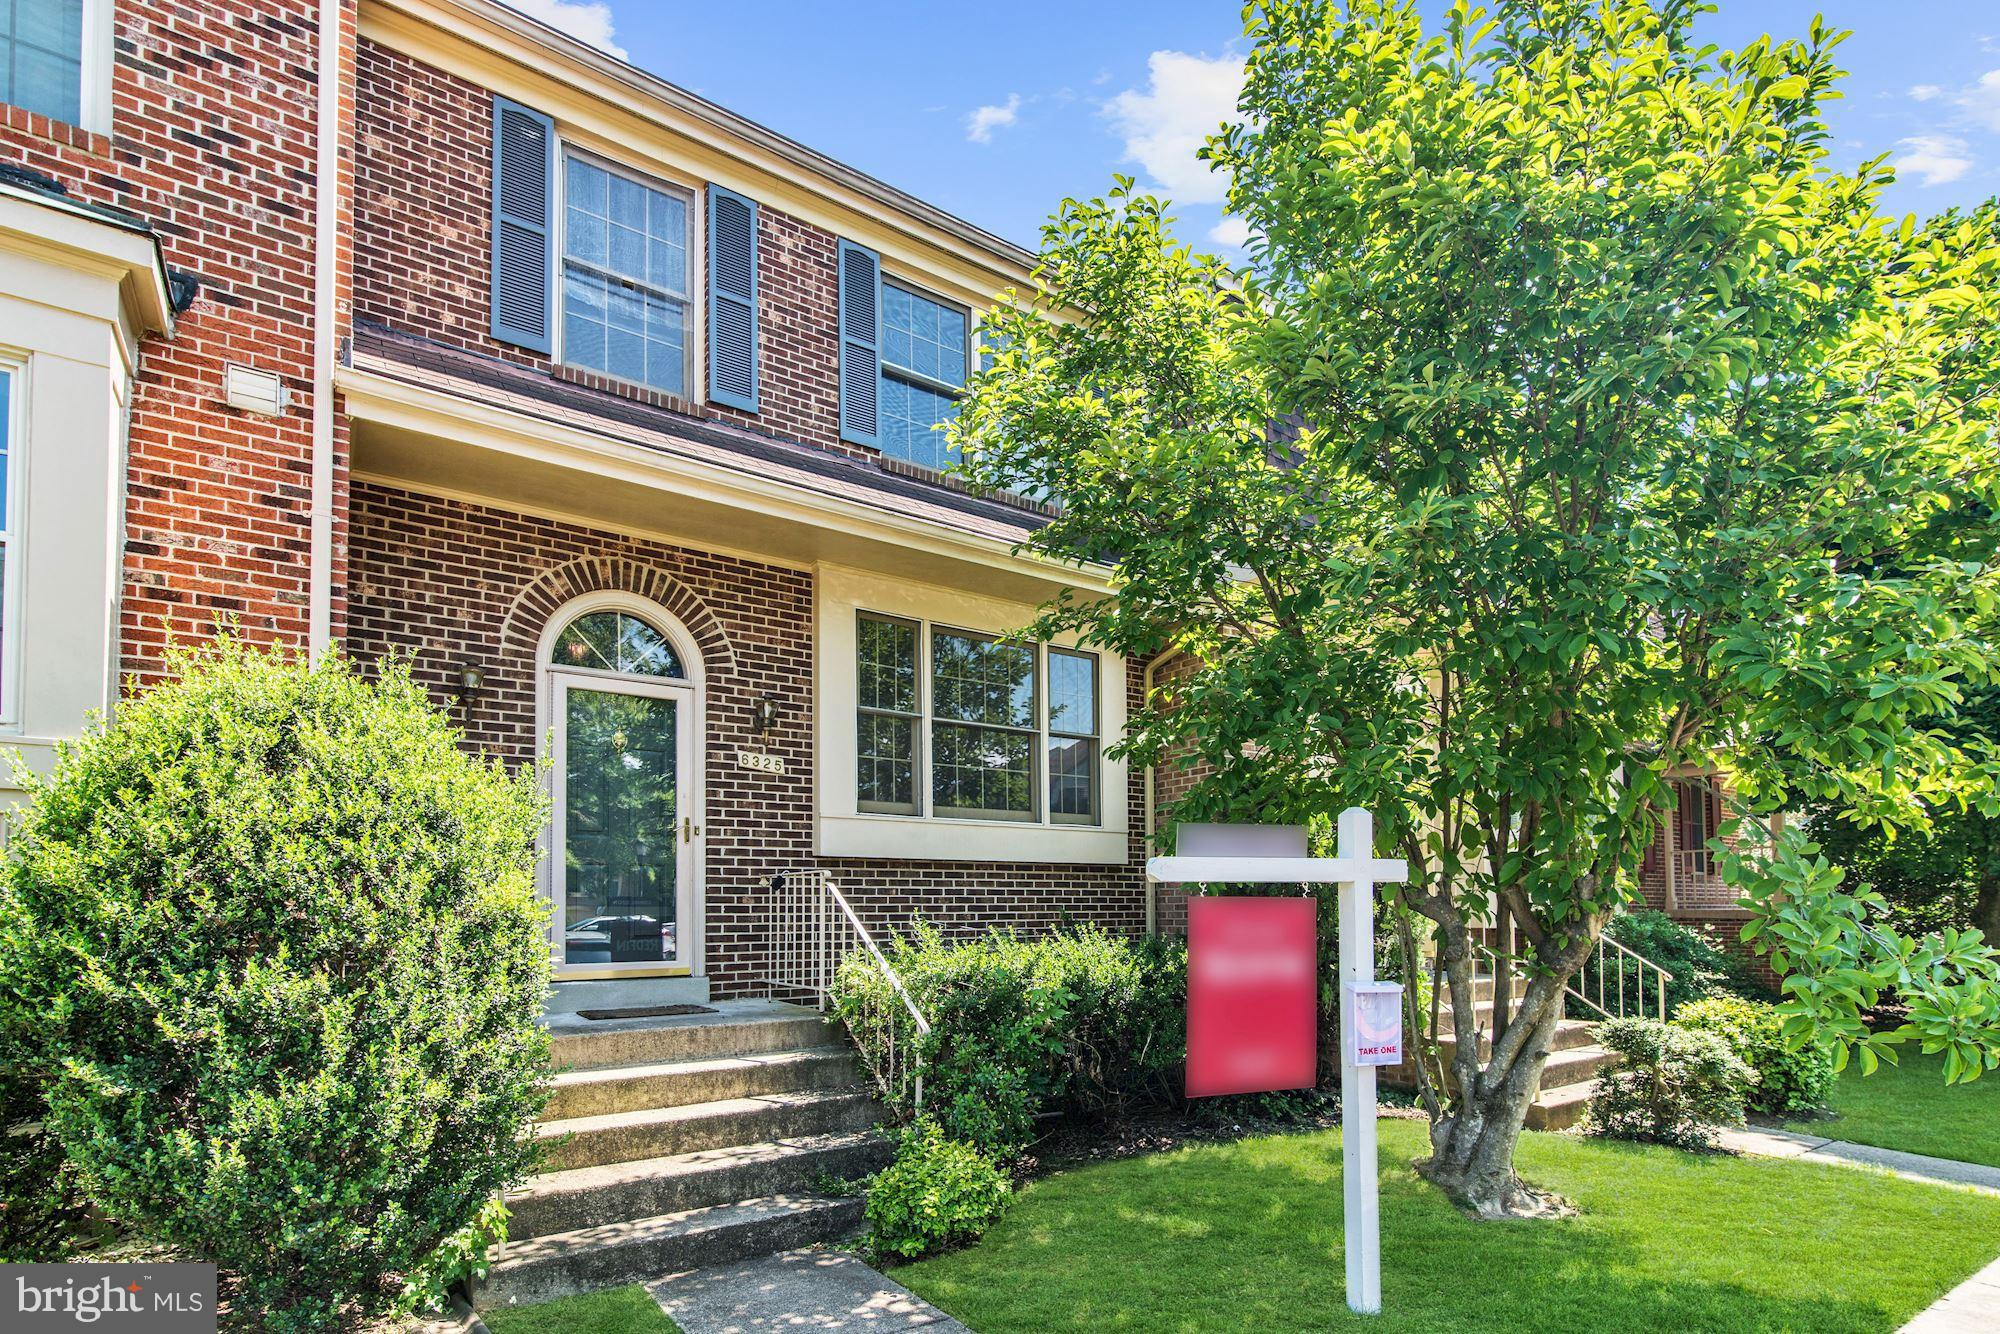 Brilliant hardwood floors, a bright and spacious family room, finished basement complete with a brick fireplace and walkout access.  Located just across the street from restaurants and essential shopping.